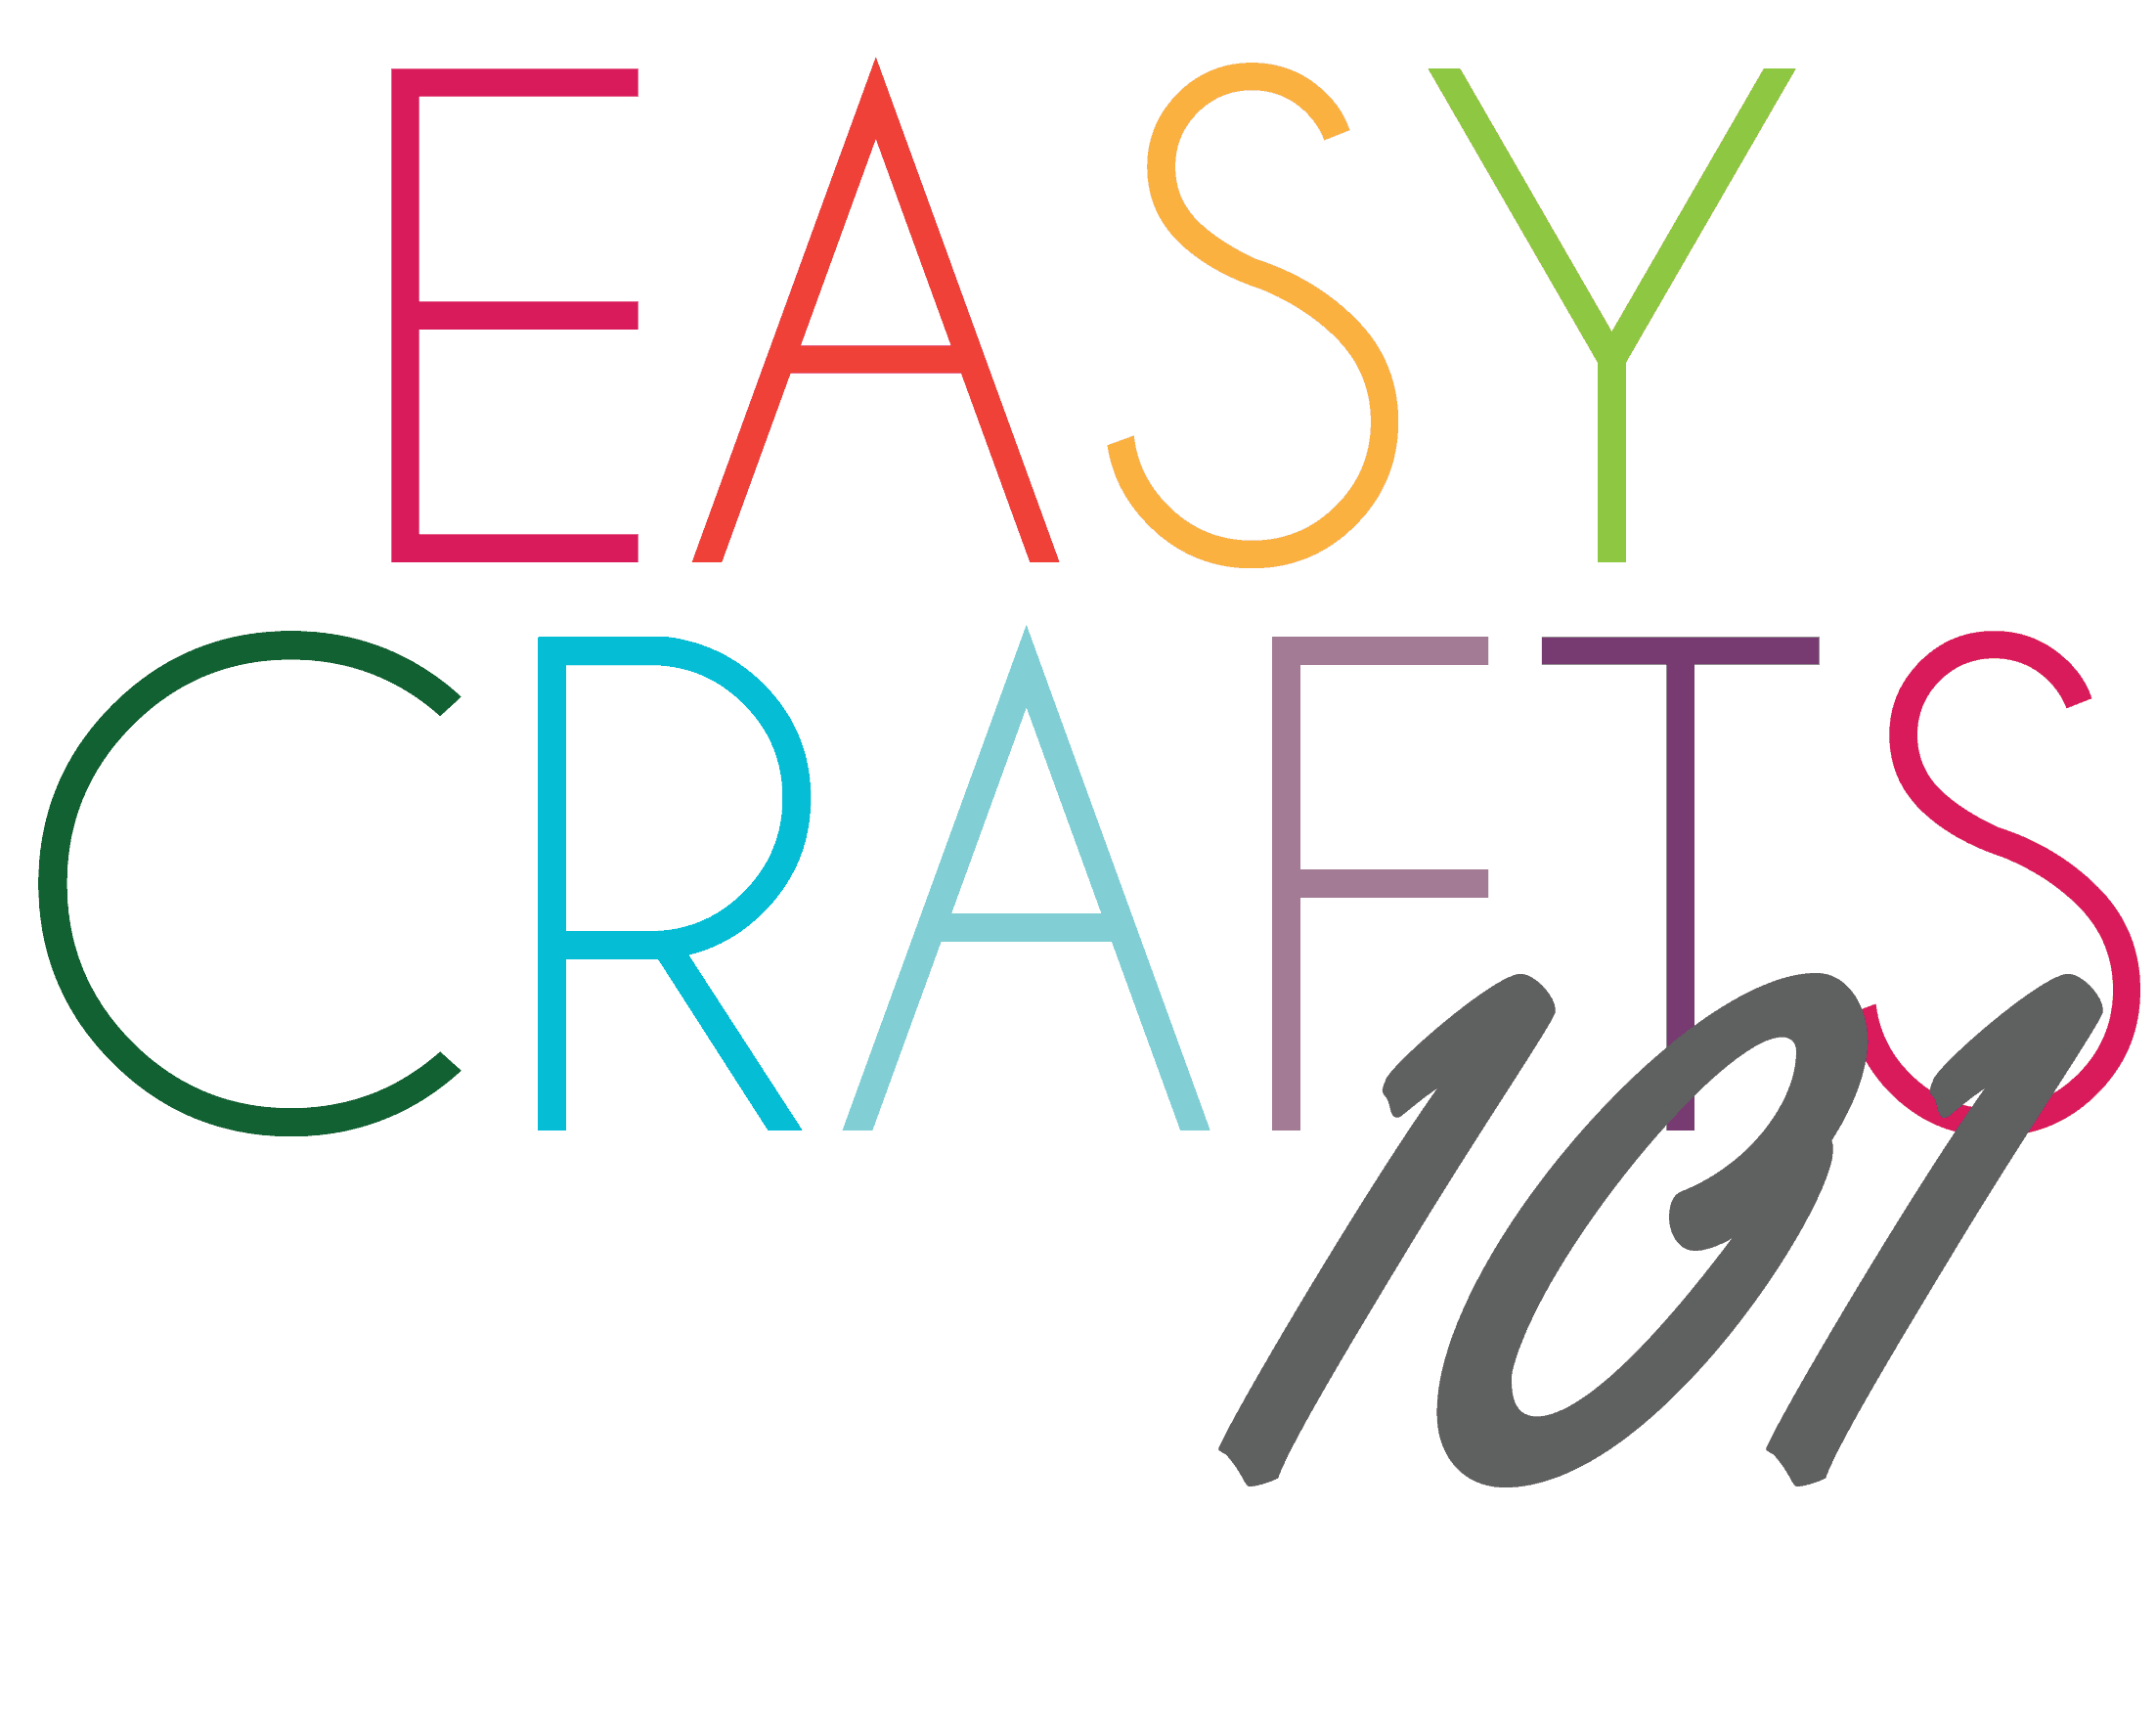 Easy Crafts 101 - Sharing the love of making things with everyone!